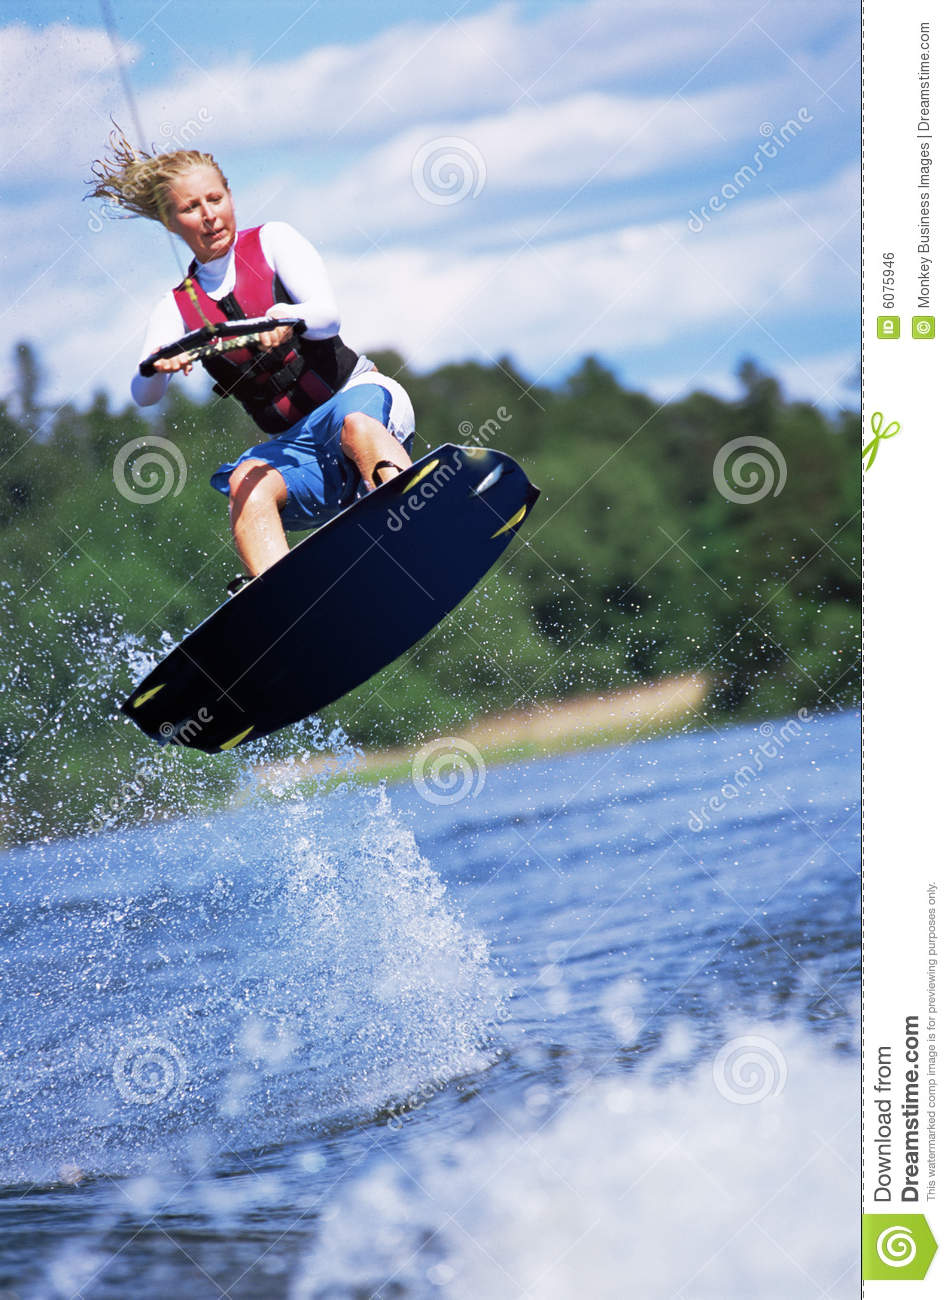 Skiing water woman young